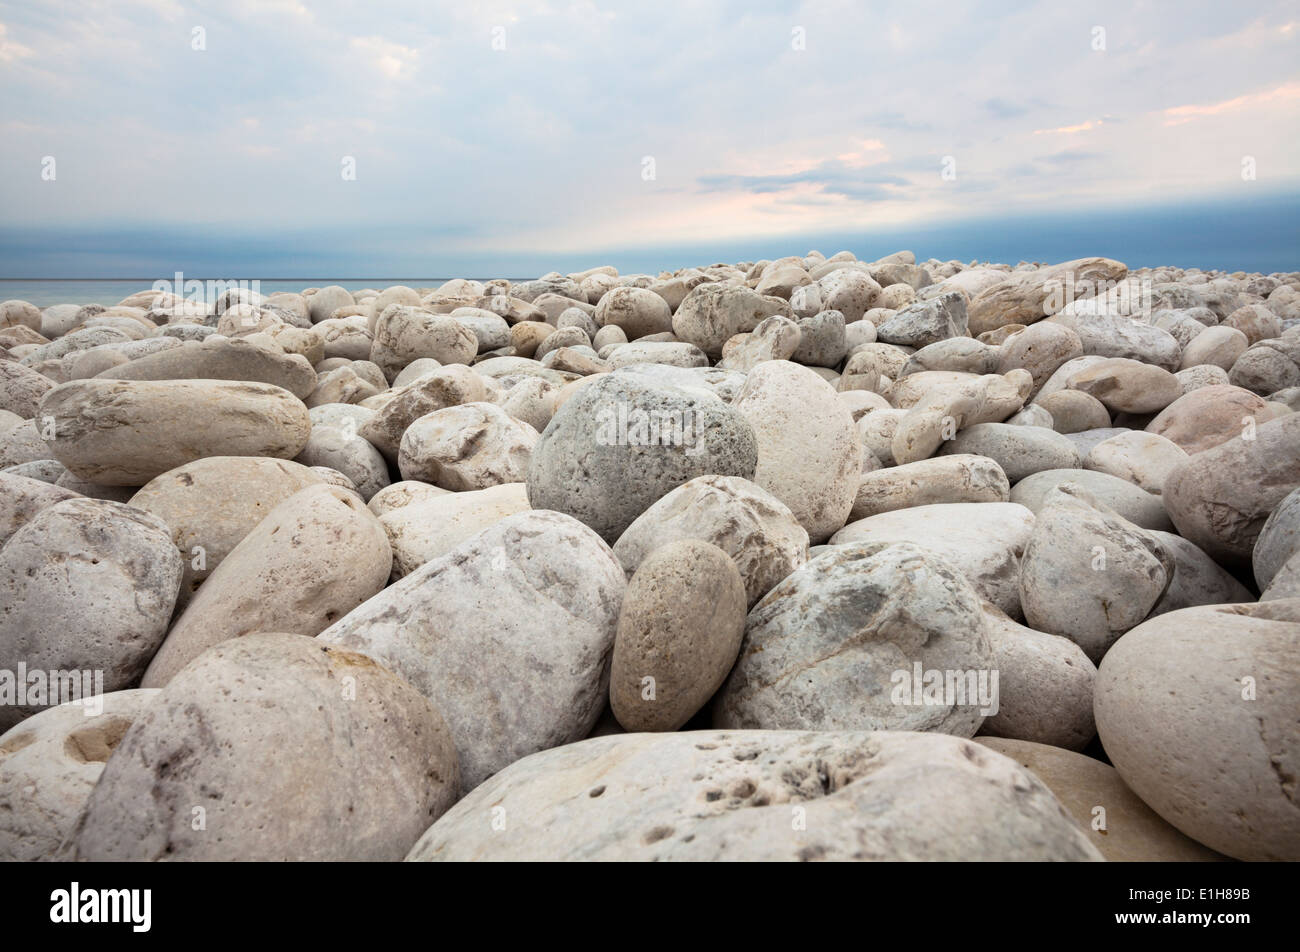 Hundreds of rounded rocks bleached by the sun cover this vast shoreline. Bruce Peninsula National Park, Ontario, Canada. - Stock Image